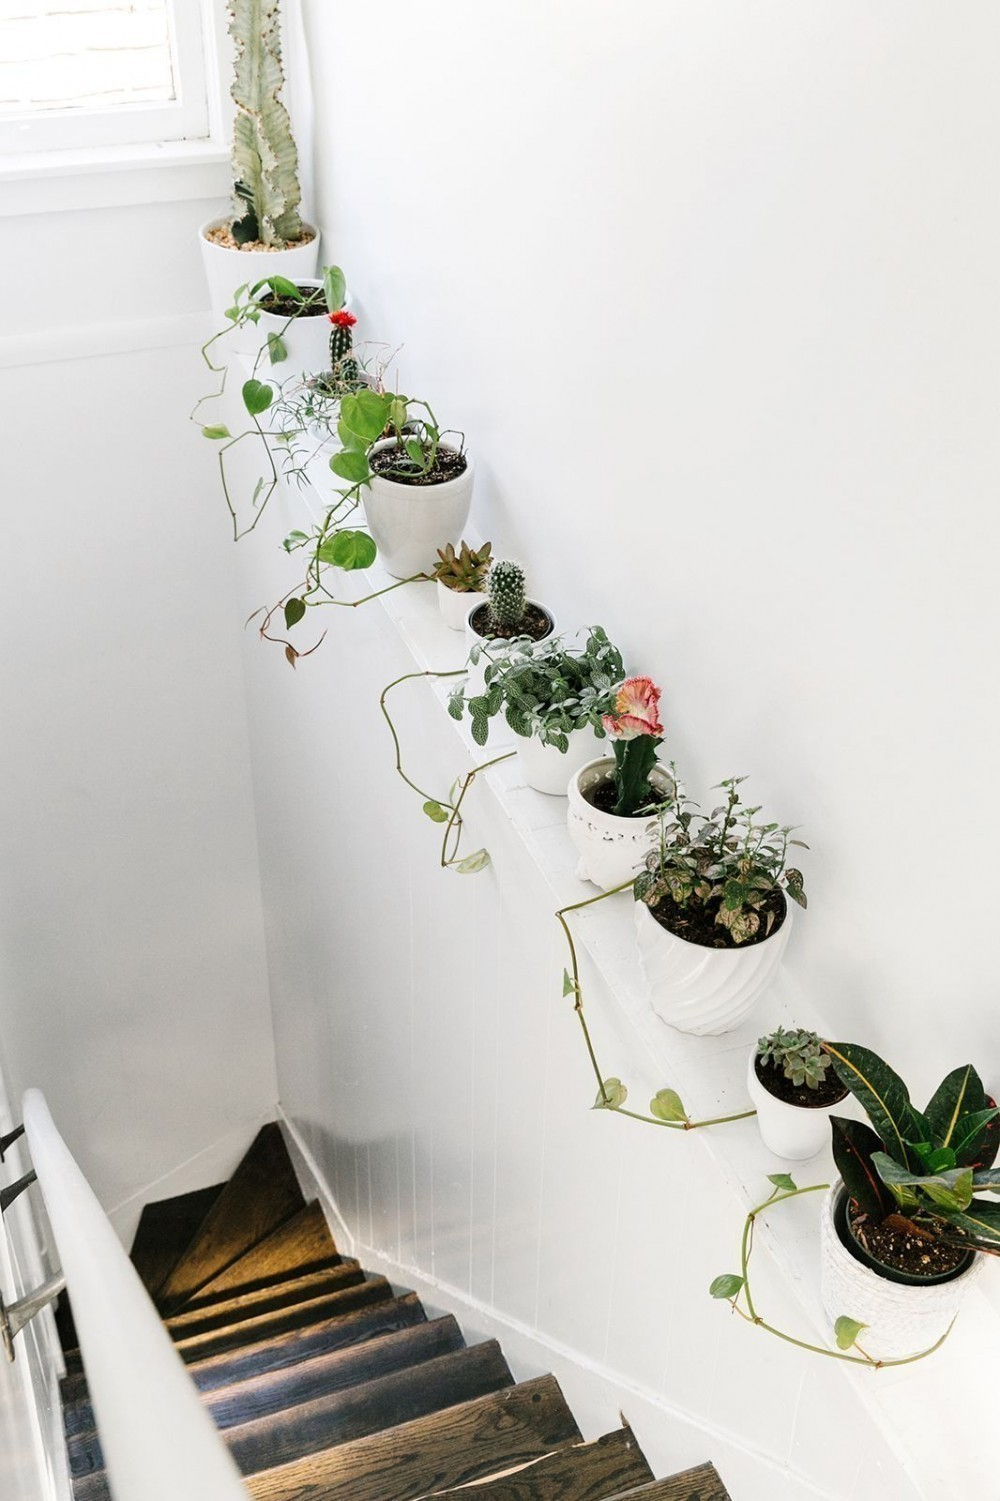 12 ideas para decorar con plantas for Ideas para decorar interiores con plantas